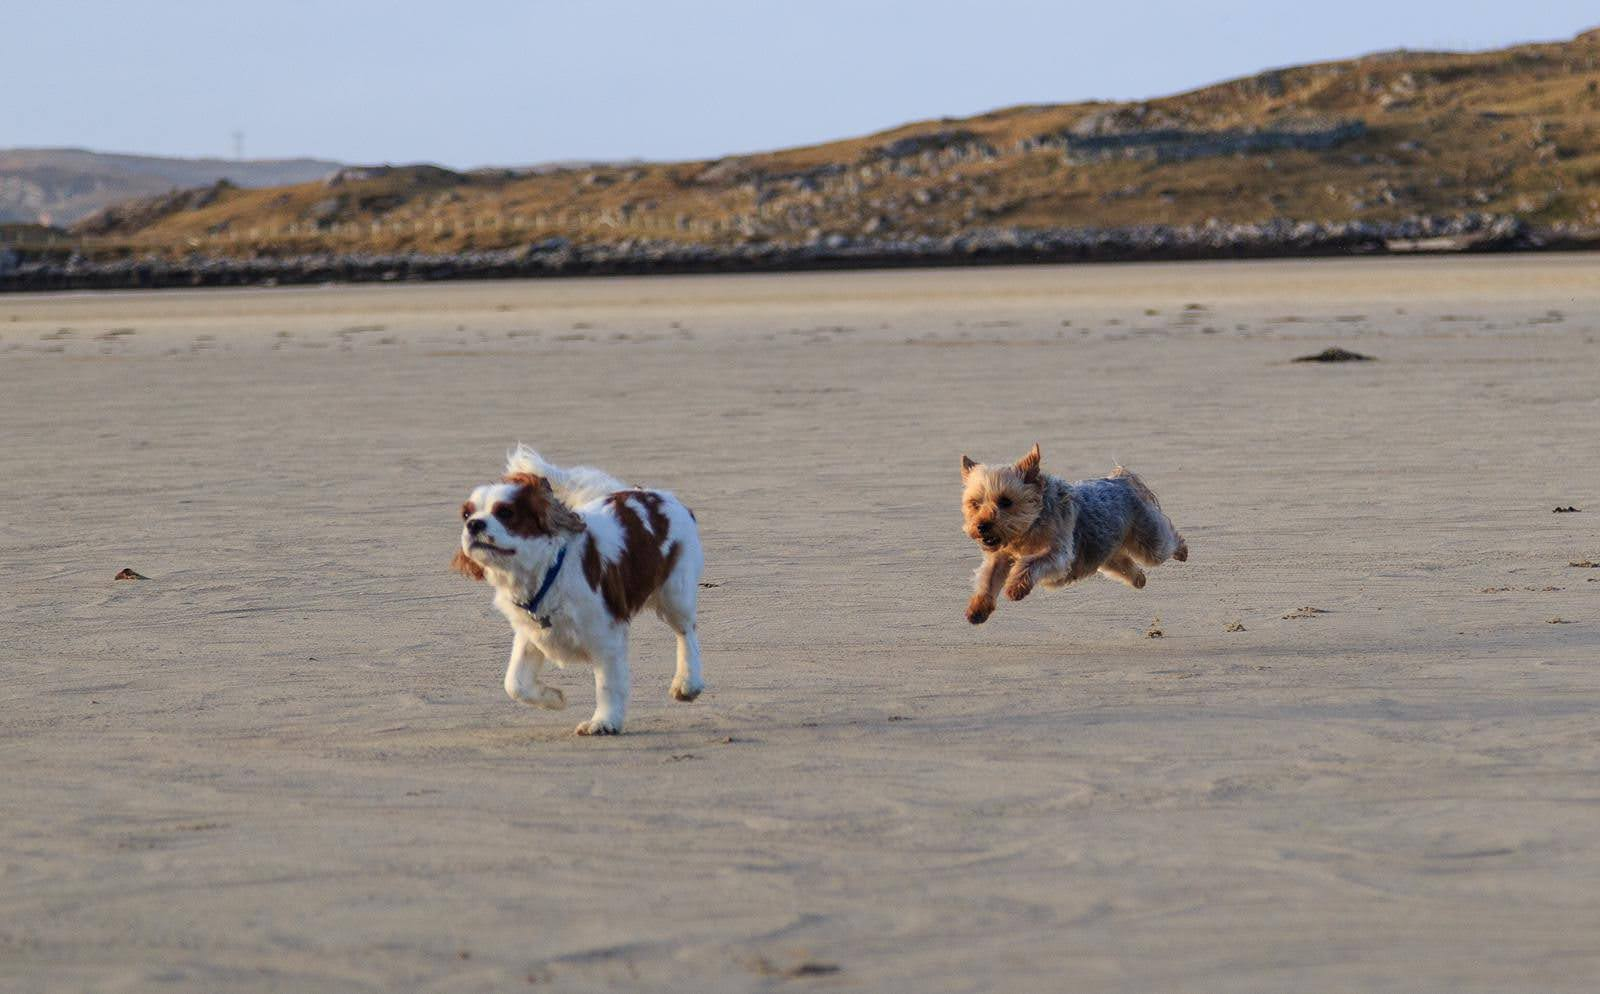 Why stories sell: A photo of my dogs on the beach, which makes me more relatable to my ideal client